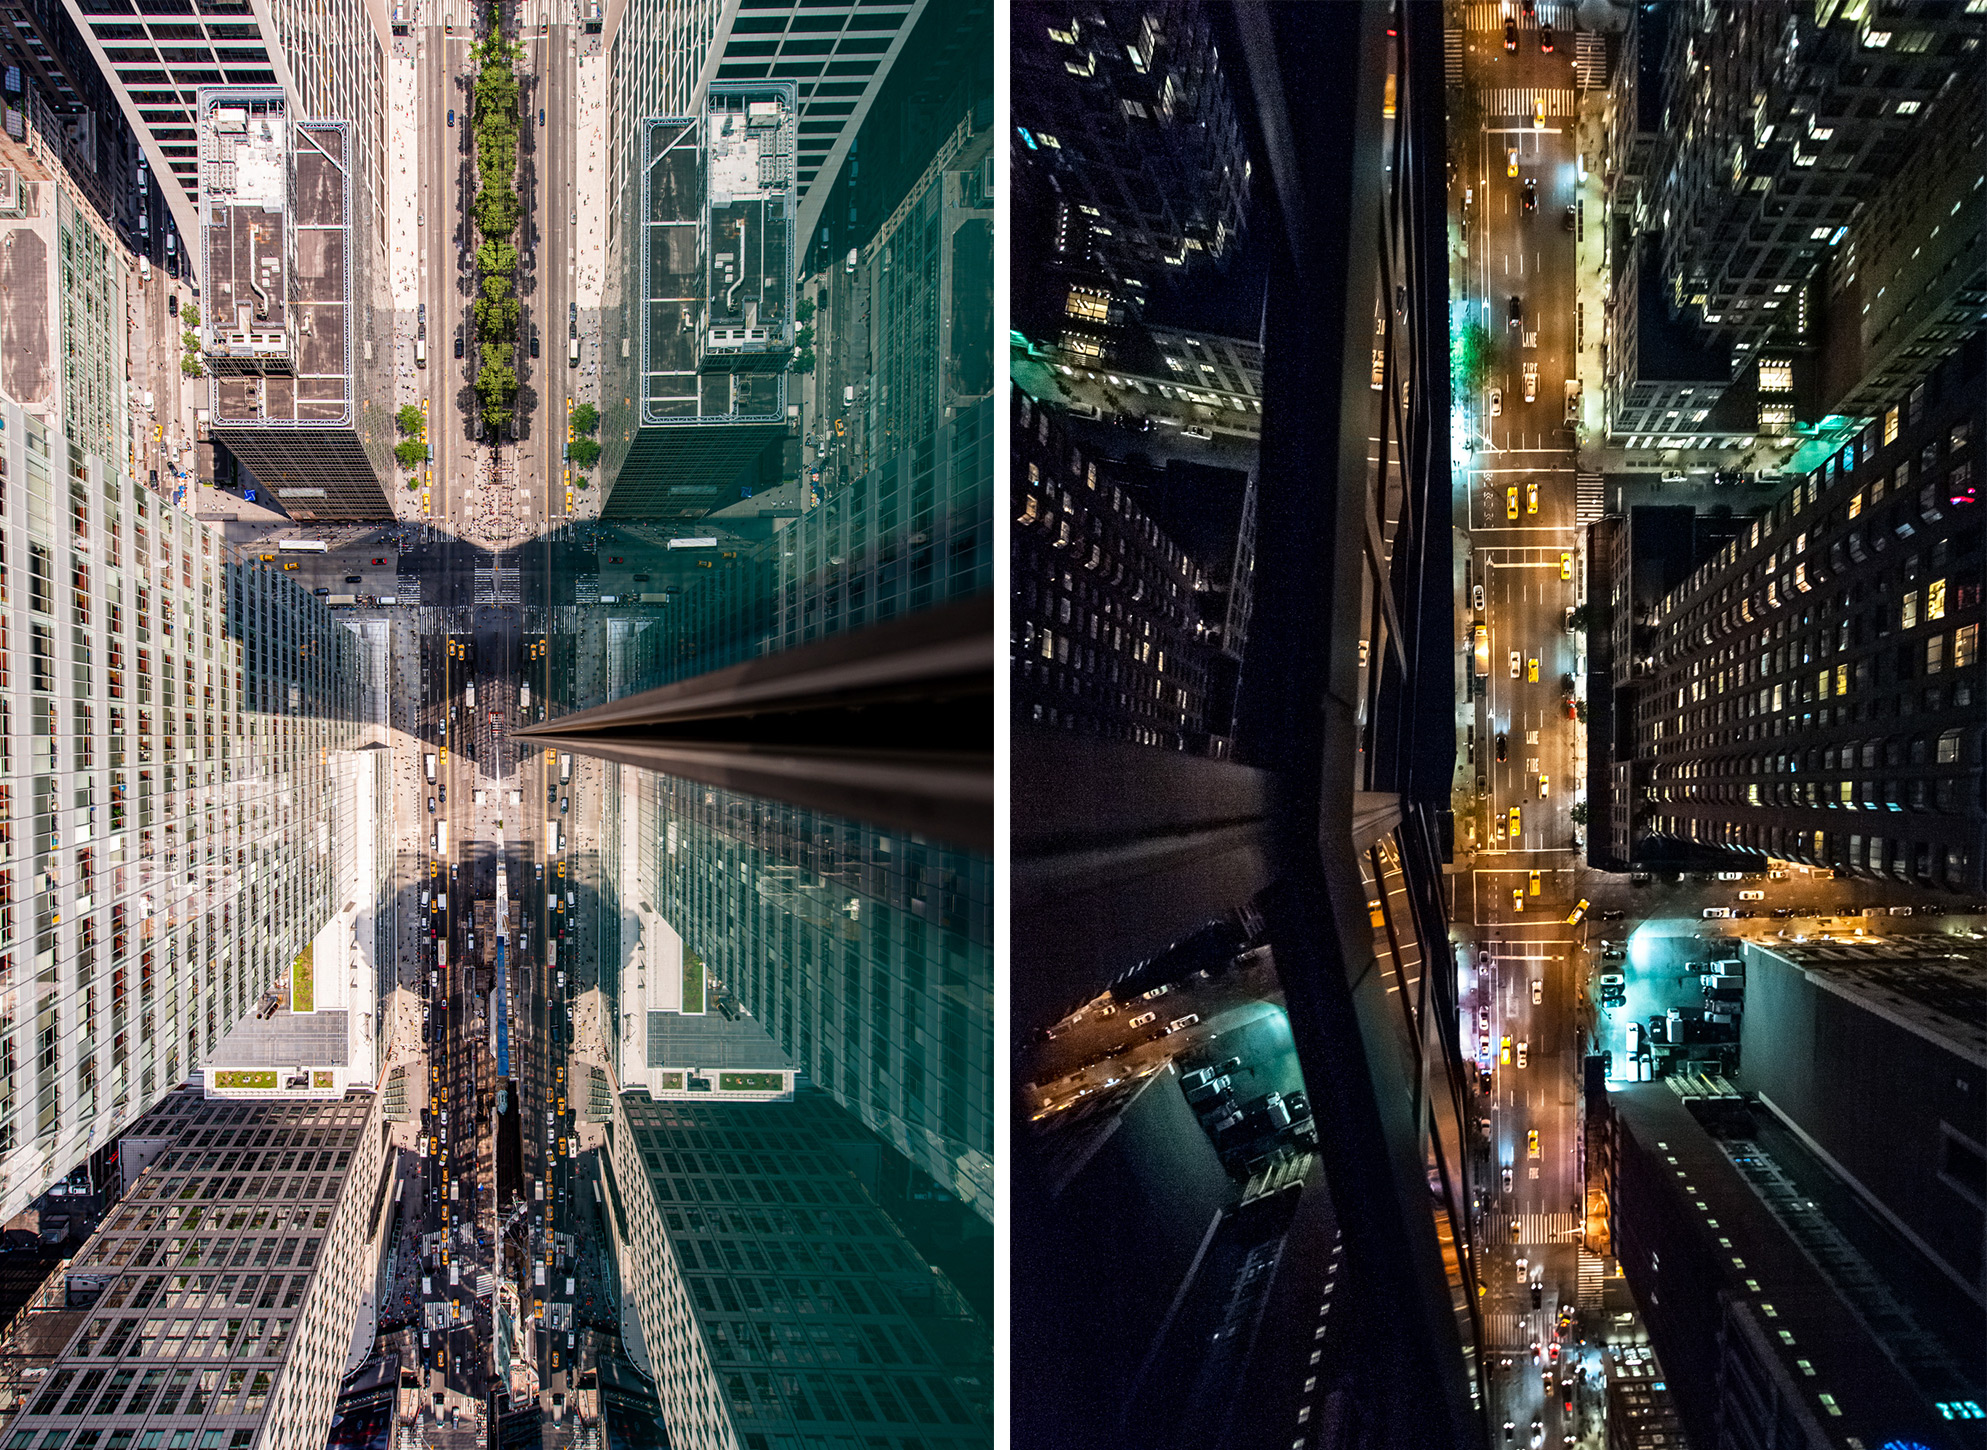 Towering Skyscrapers Reflect New York City's Density in Navid Baraty's Photographs